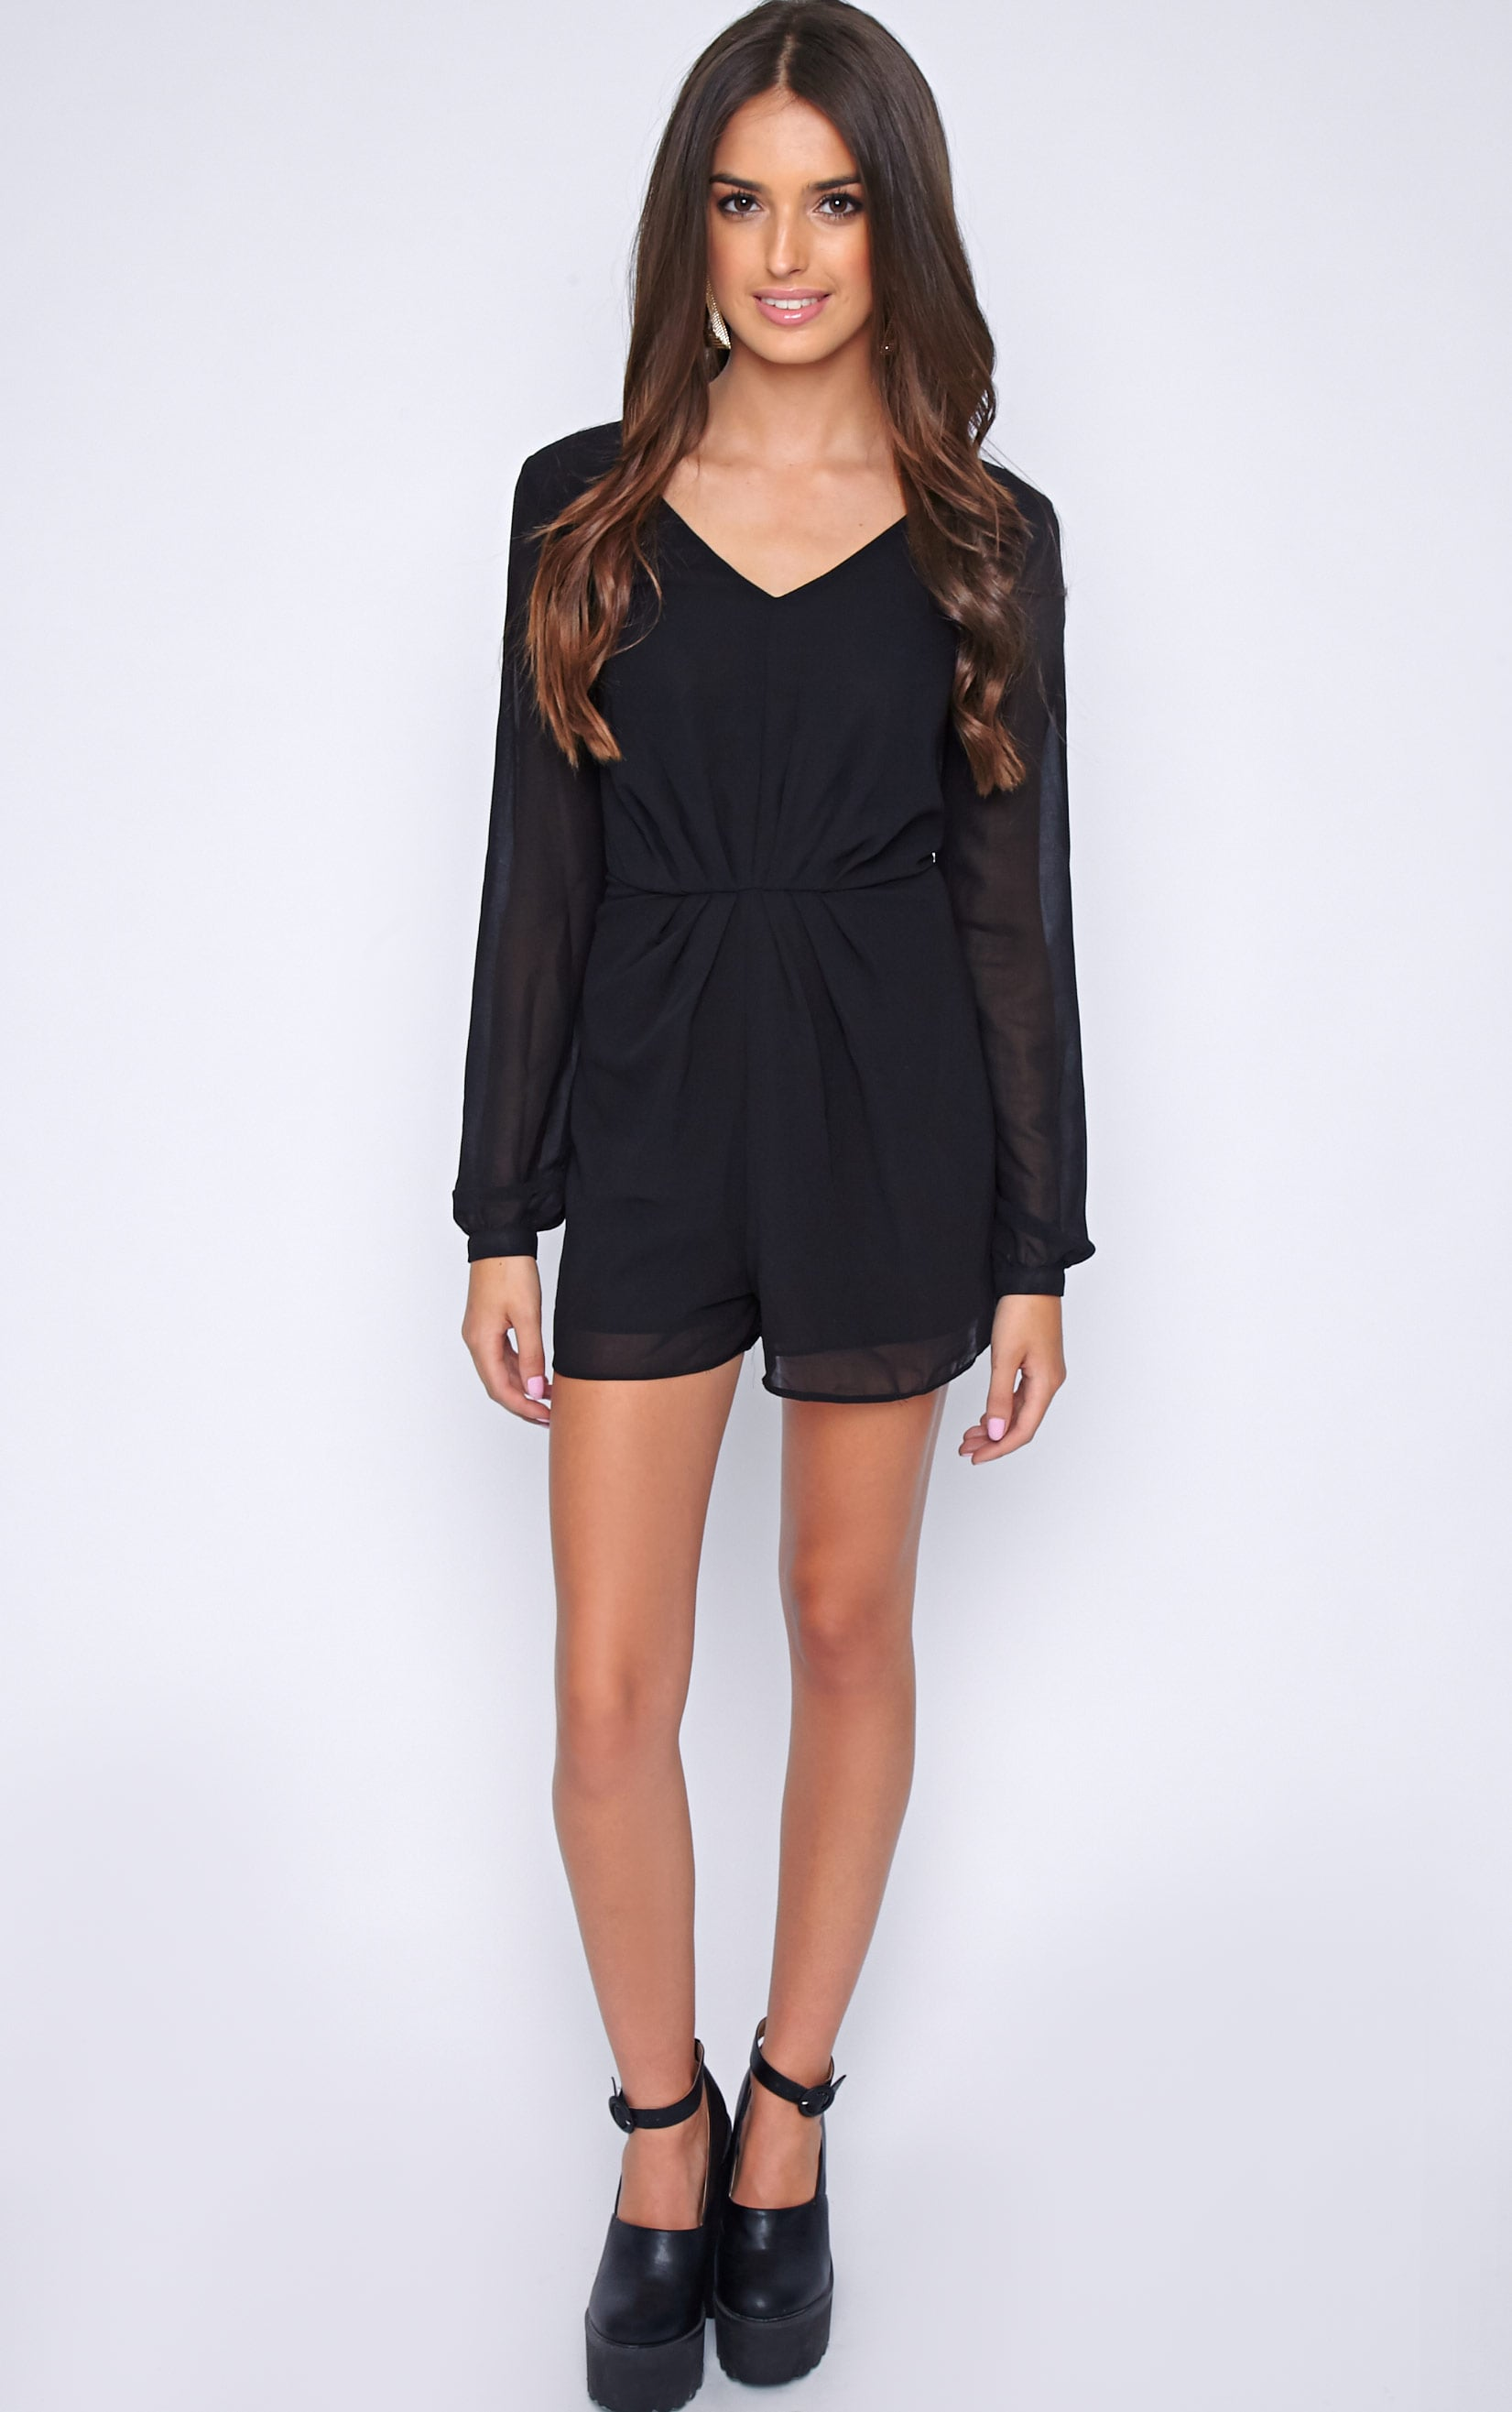 Alexandra Black Chiffon Playsuit 4